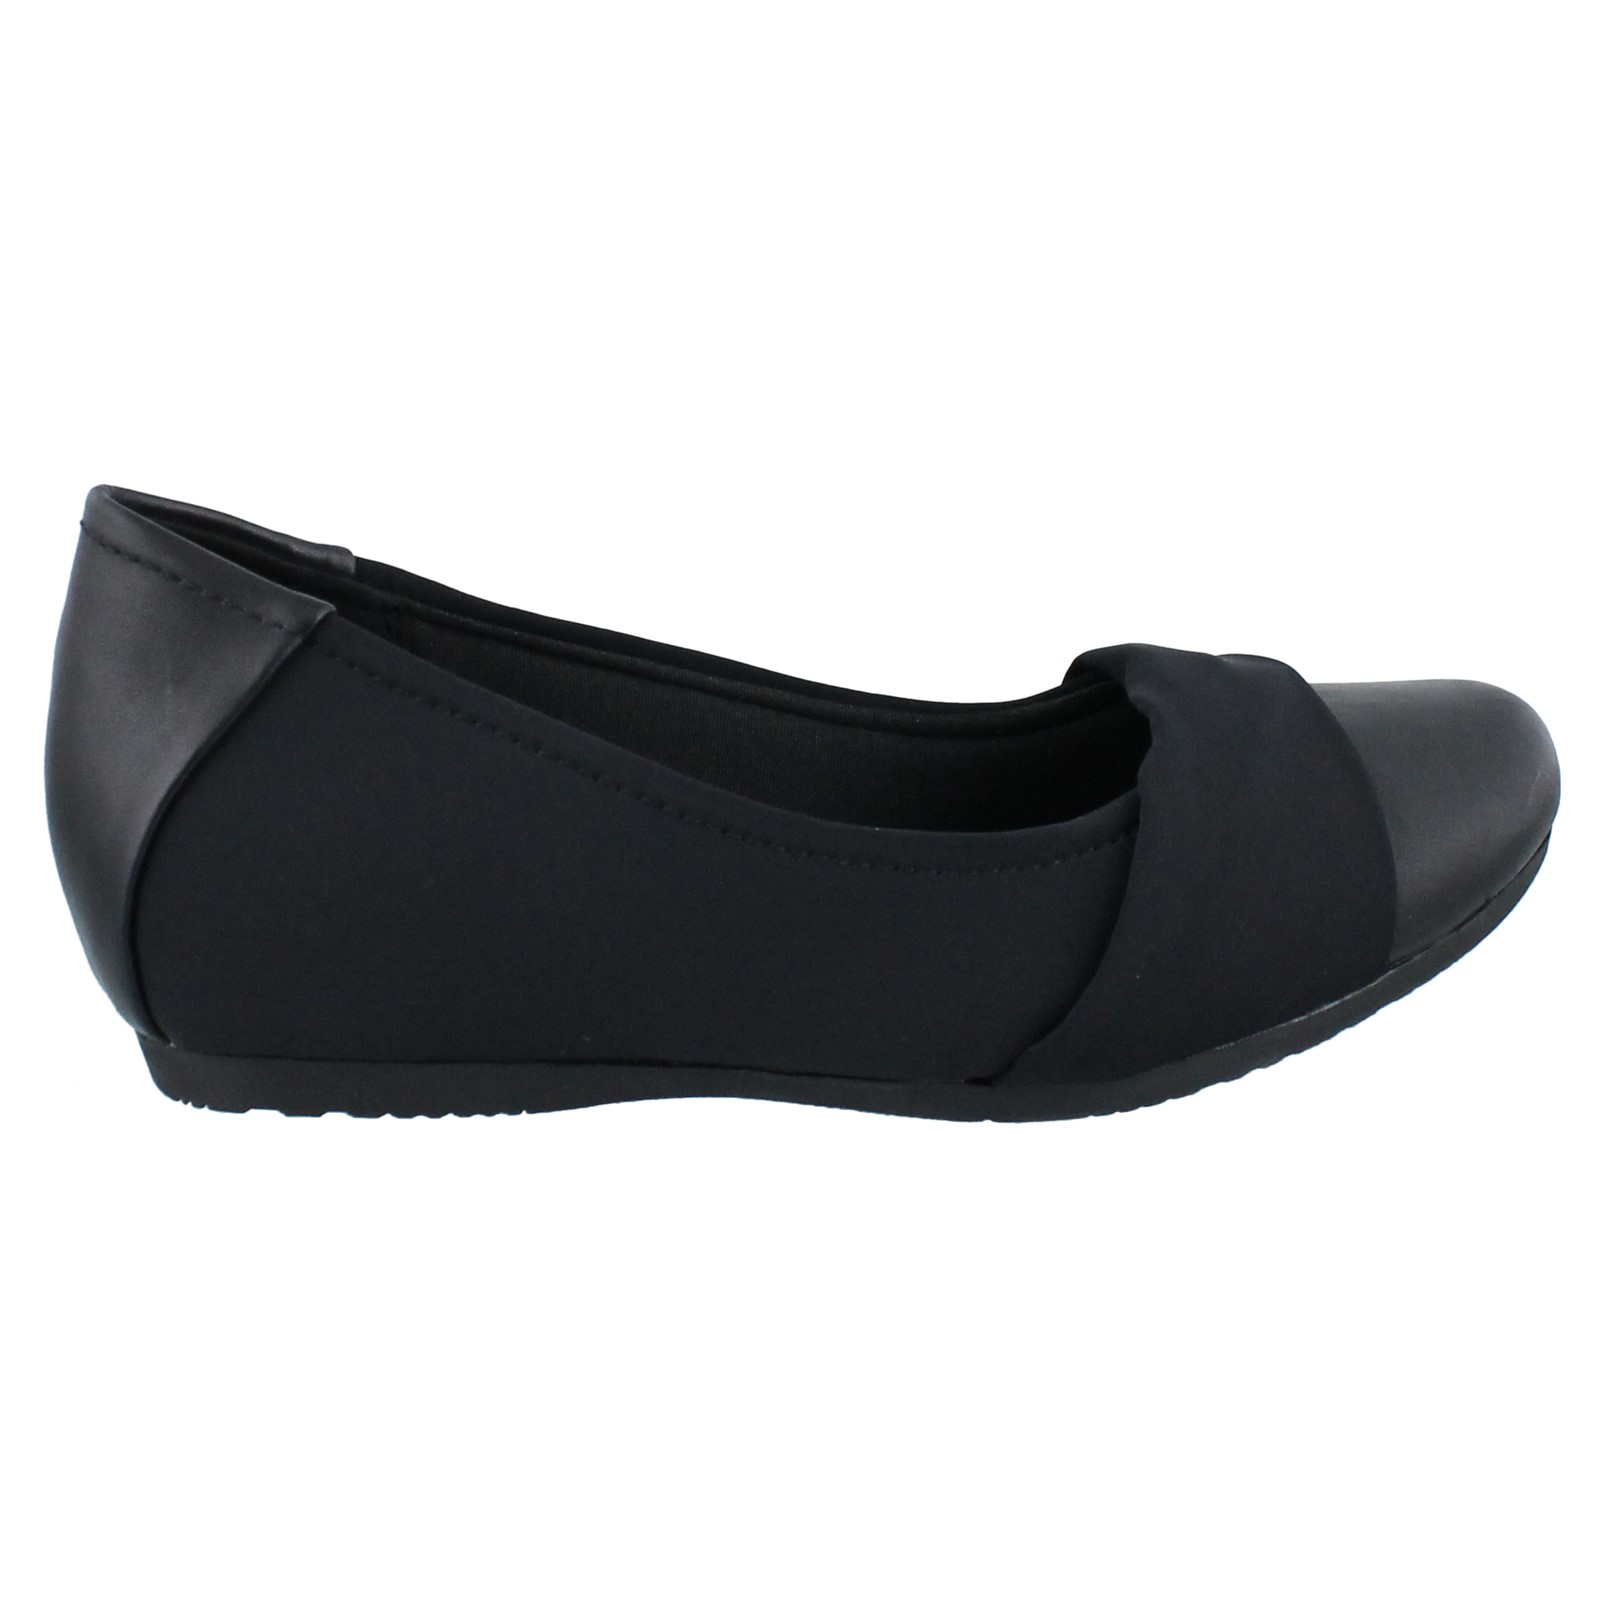 Women's Bare Traps, Mitsy Low Wedge Flat